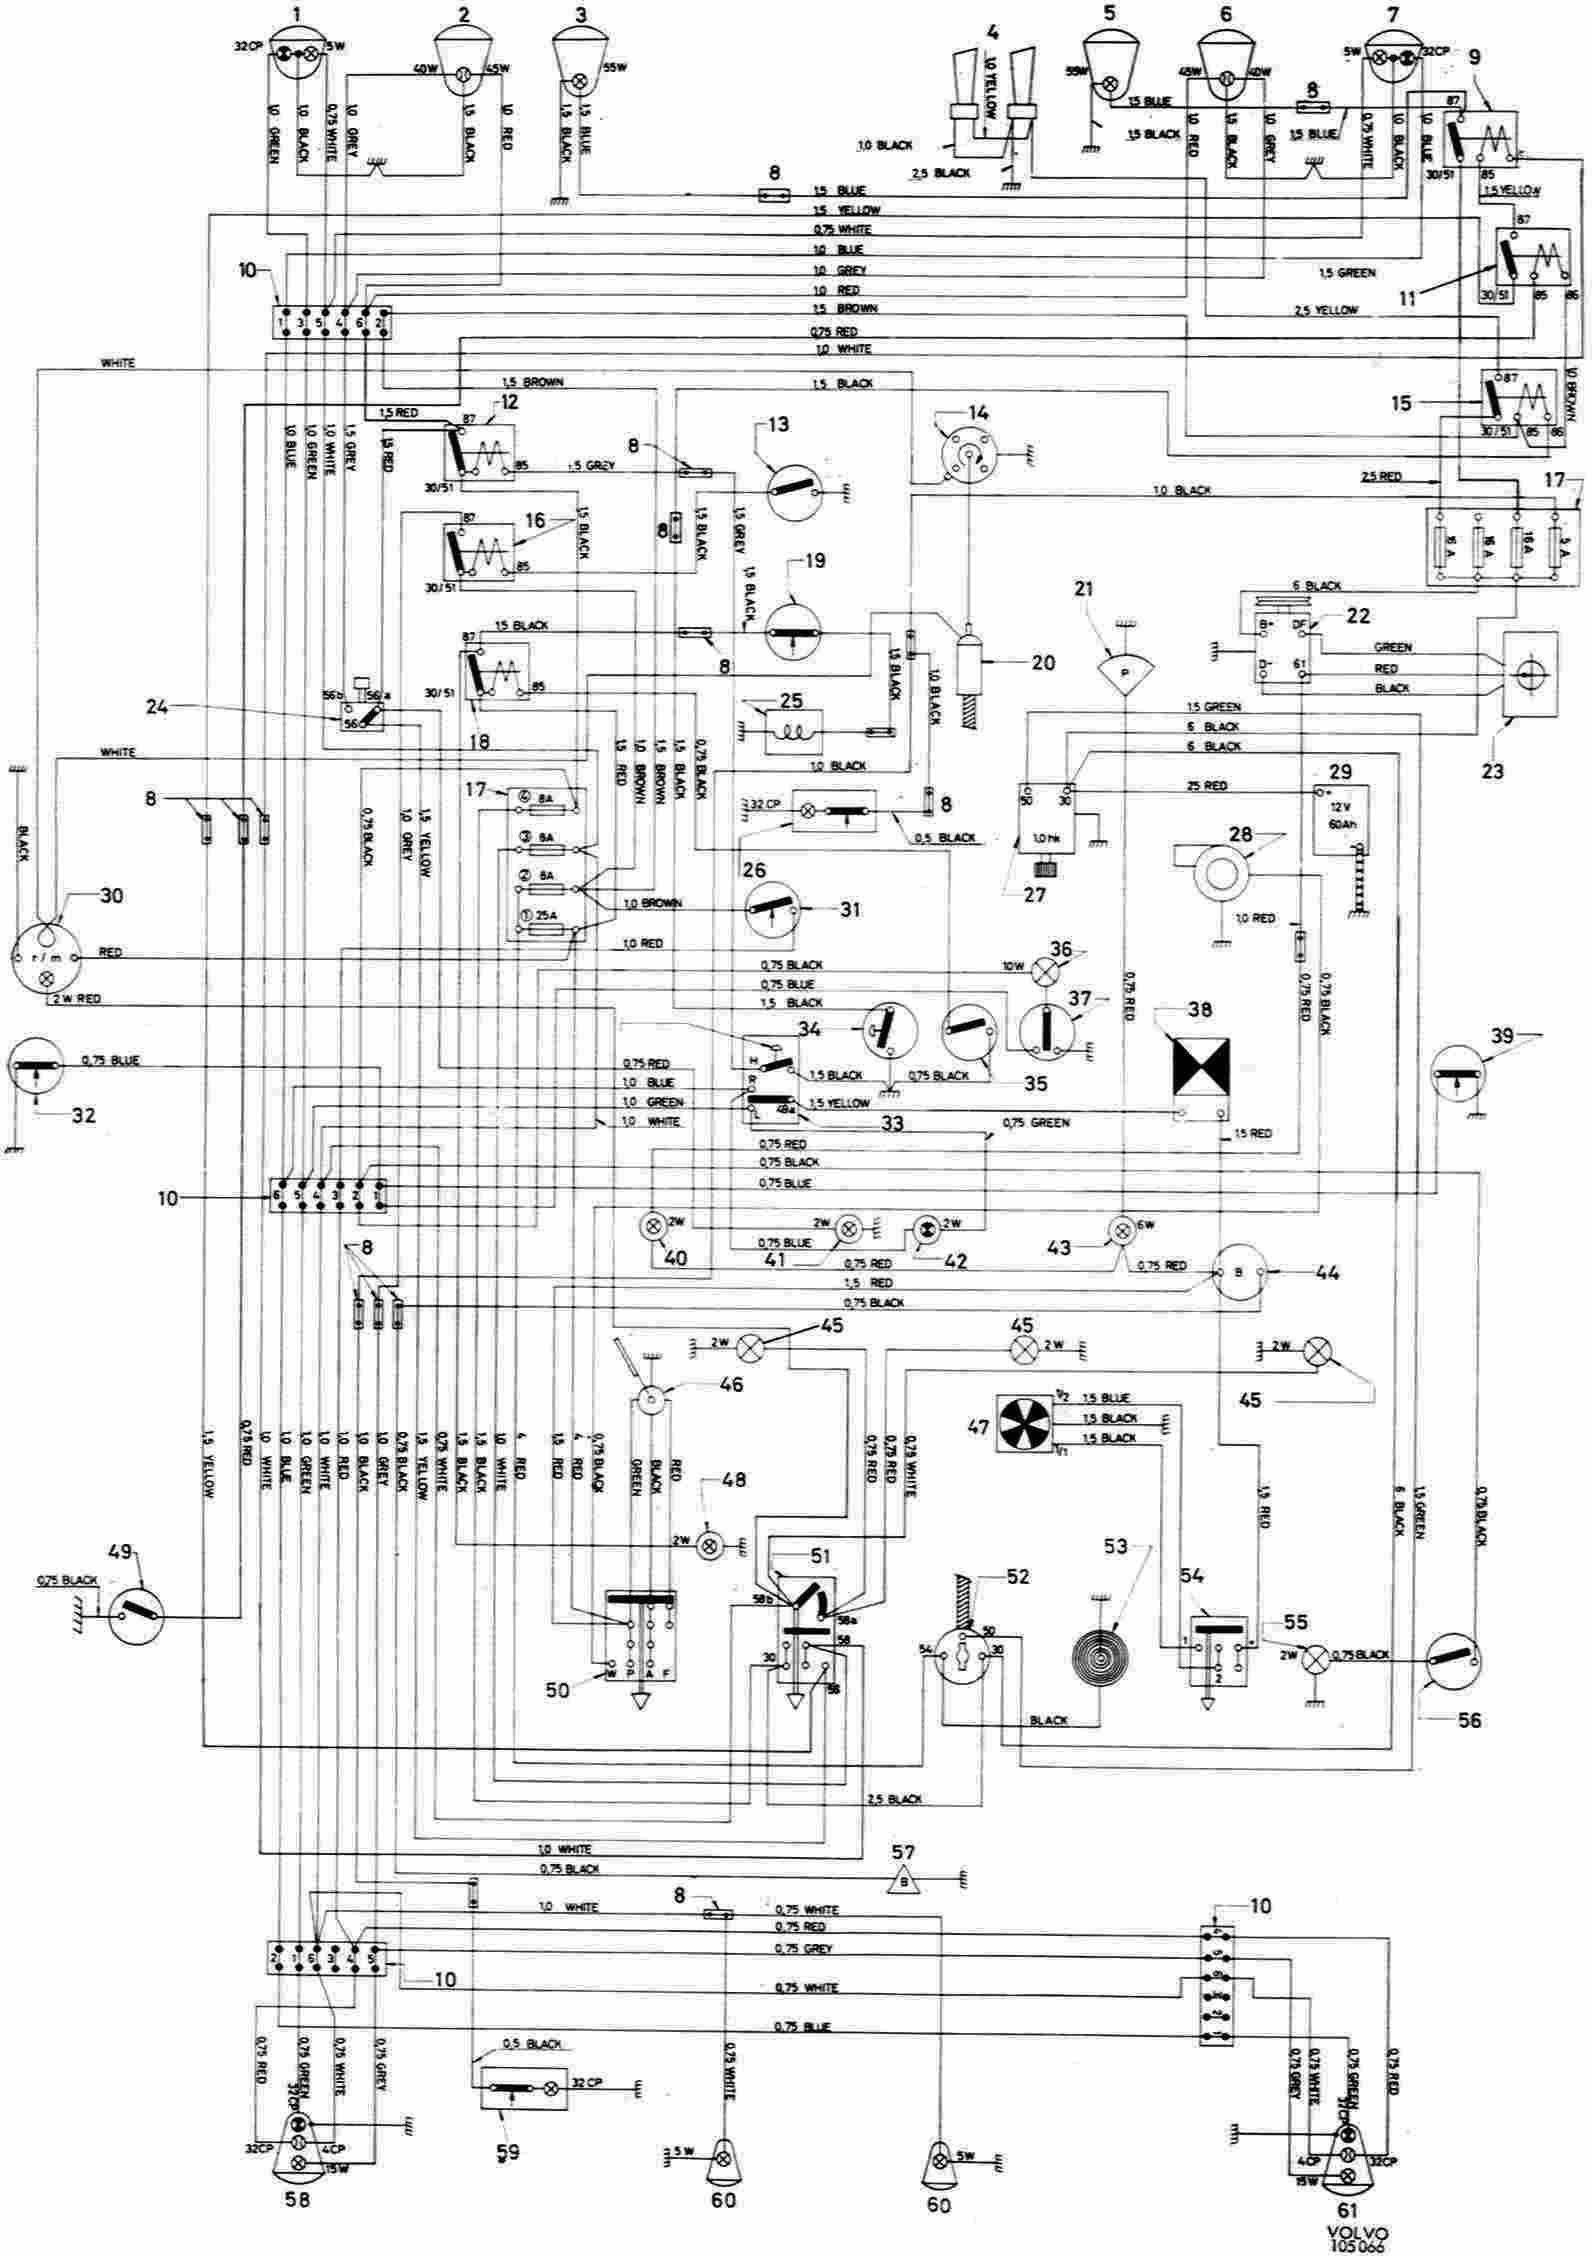 936F63 2001 Volvo S70 Wiring Diagram | Wiring Resources on volvo v70 tailgate wiring harness, volvo amazon wiring diagram, volvo v70 cooling, volvo ignition wiring diagram, volvo v70 timing marks, volvo v70 battery, volvo v70 rear suspension, volvo v70 thermostat, volvo v70 repair, volvo s70 wiring-diagram, volvo v70 schematics, volvo v70 oil pump, volvo 240 wiring diagram, volvo v70 power, volvo v70 fuse box diagram, volvo v70 distributor, volvo t5 engine diagram, volvo v70 firing order, volvo v70 vacuum diagram, volvo v70 starter,